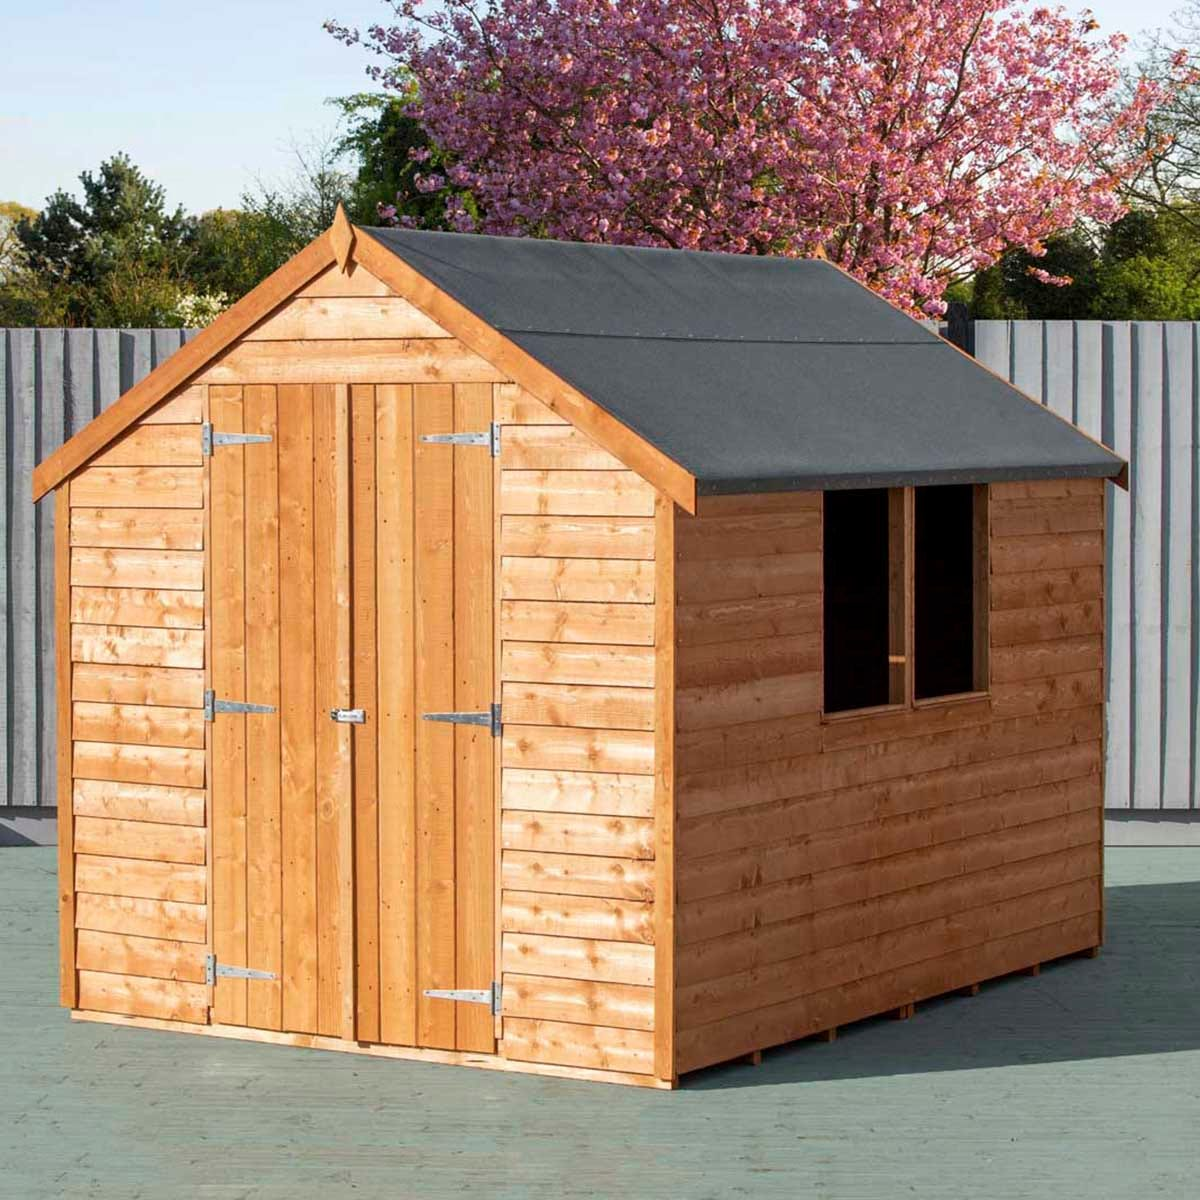 Shire Overlap 8' x 6' Value Shed With Window and Double Door